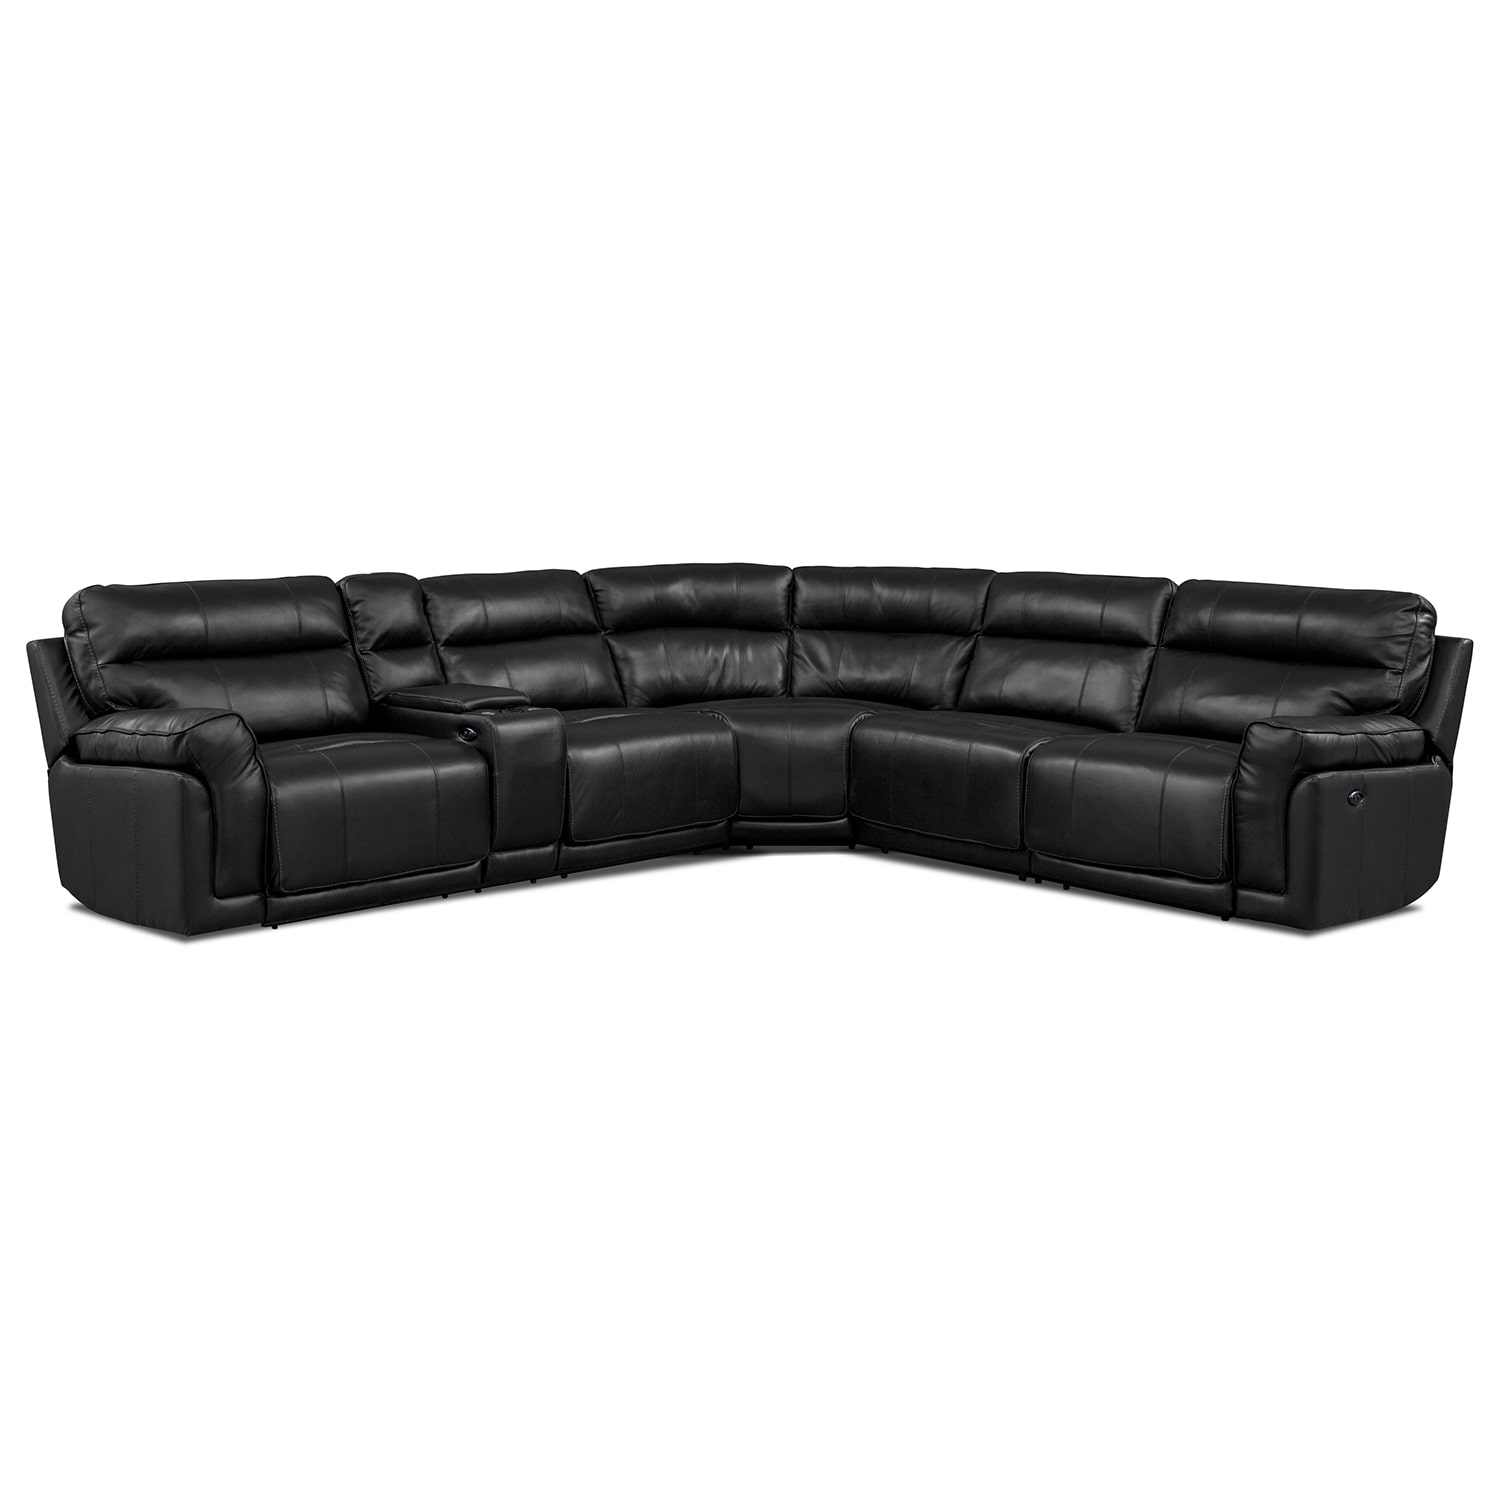 [Voyager 4 Pc. Power Reclining Sectional with Music Console]